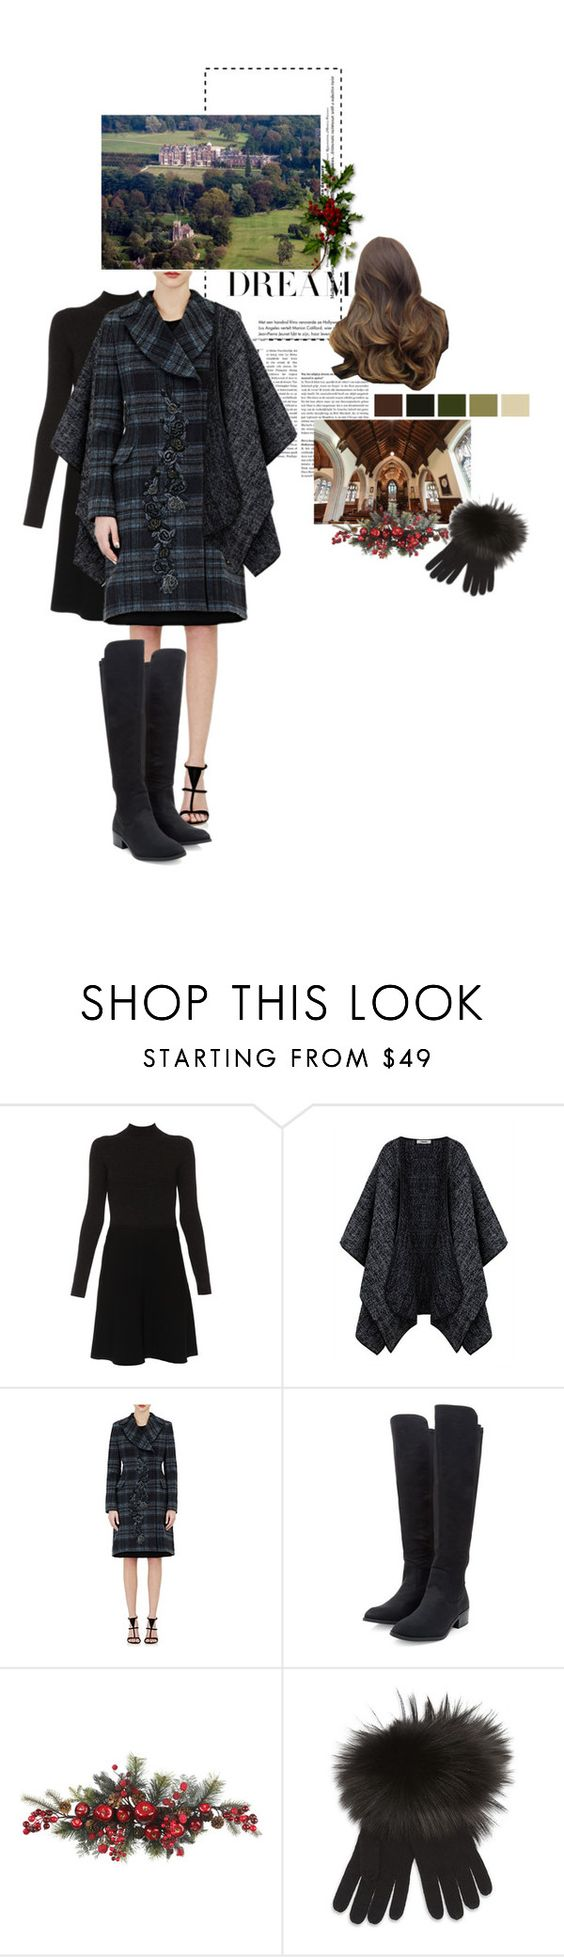 """Untitled #2405"" by duchessq ❤ liked on Polyvore featuring Paule Ka, Alberta Ferretti, Nearly Natural and Terzakou Paris"